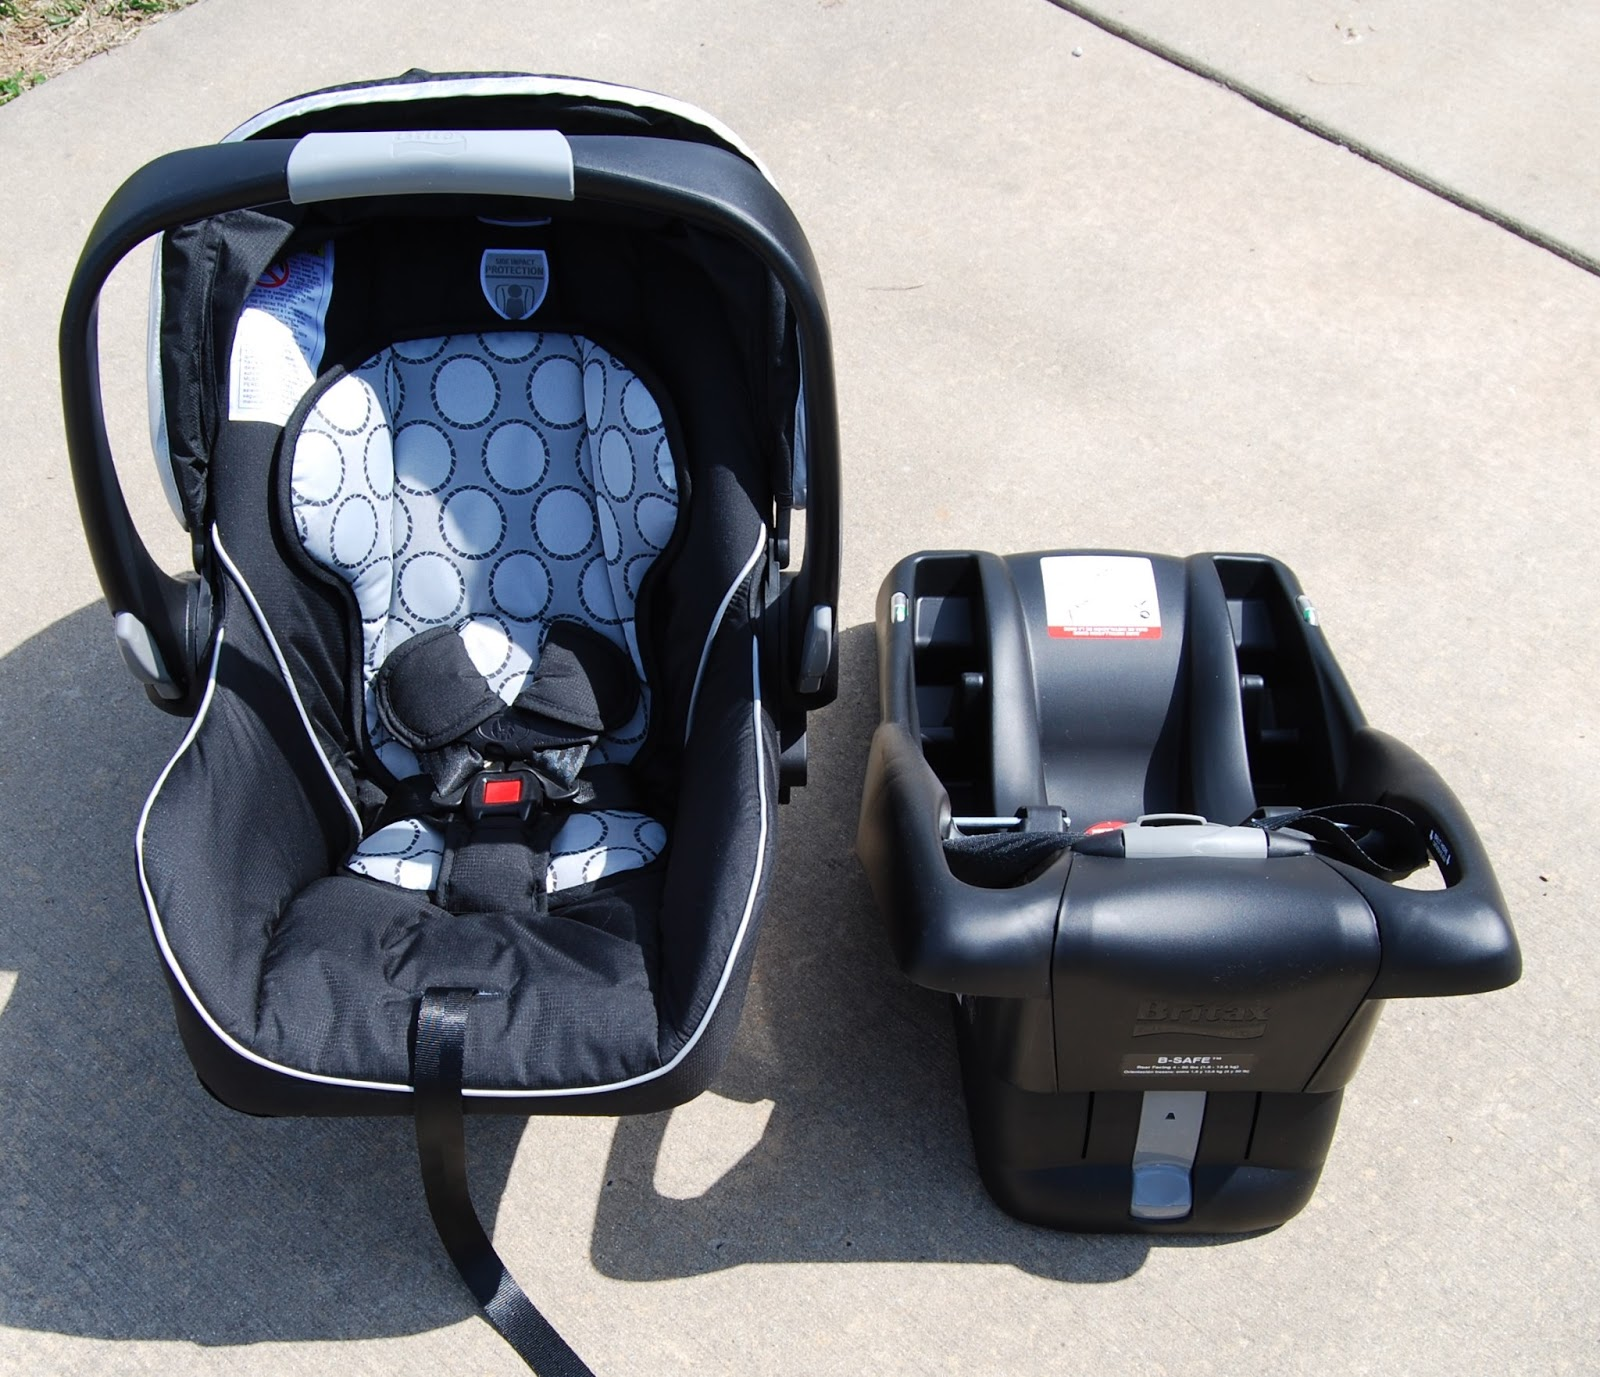 How To Choose The Safest Infant Car Seat?